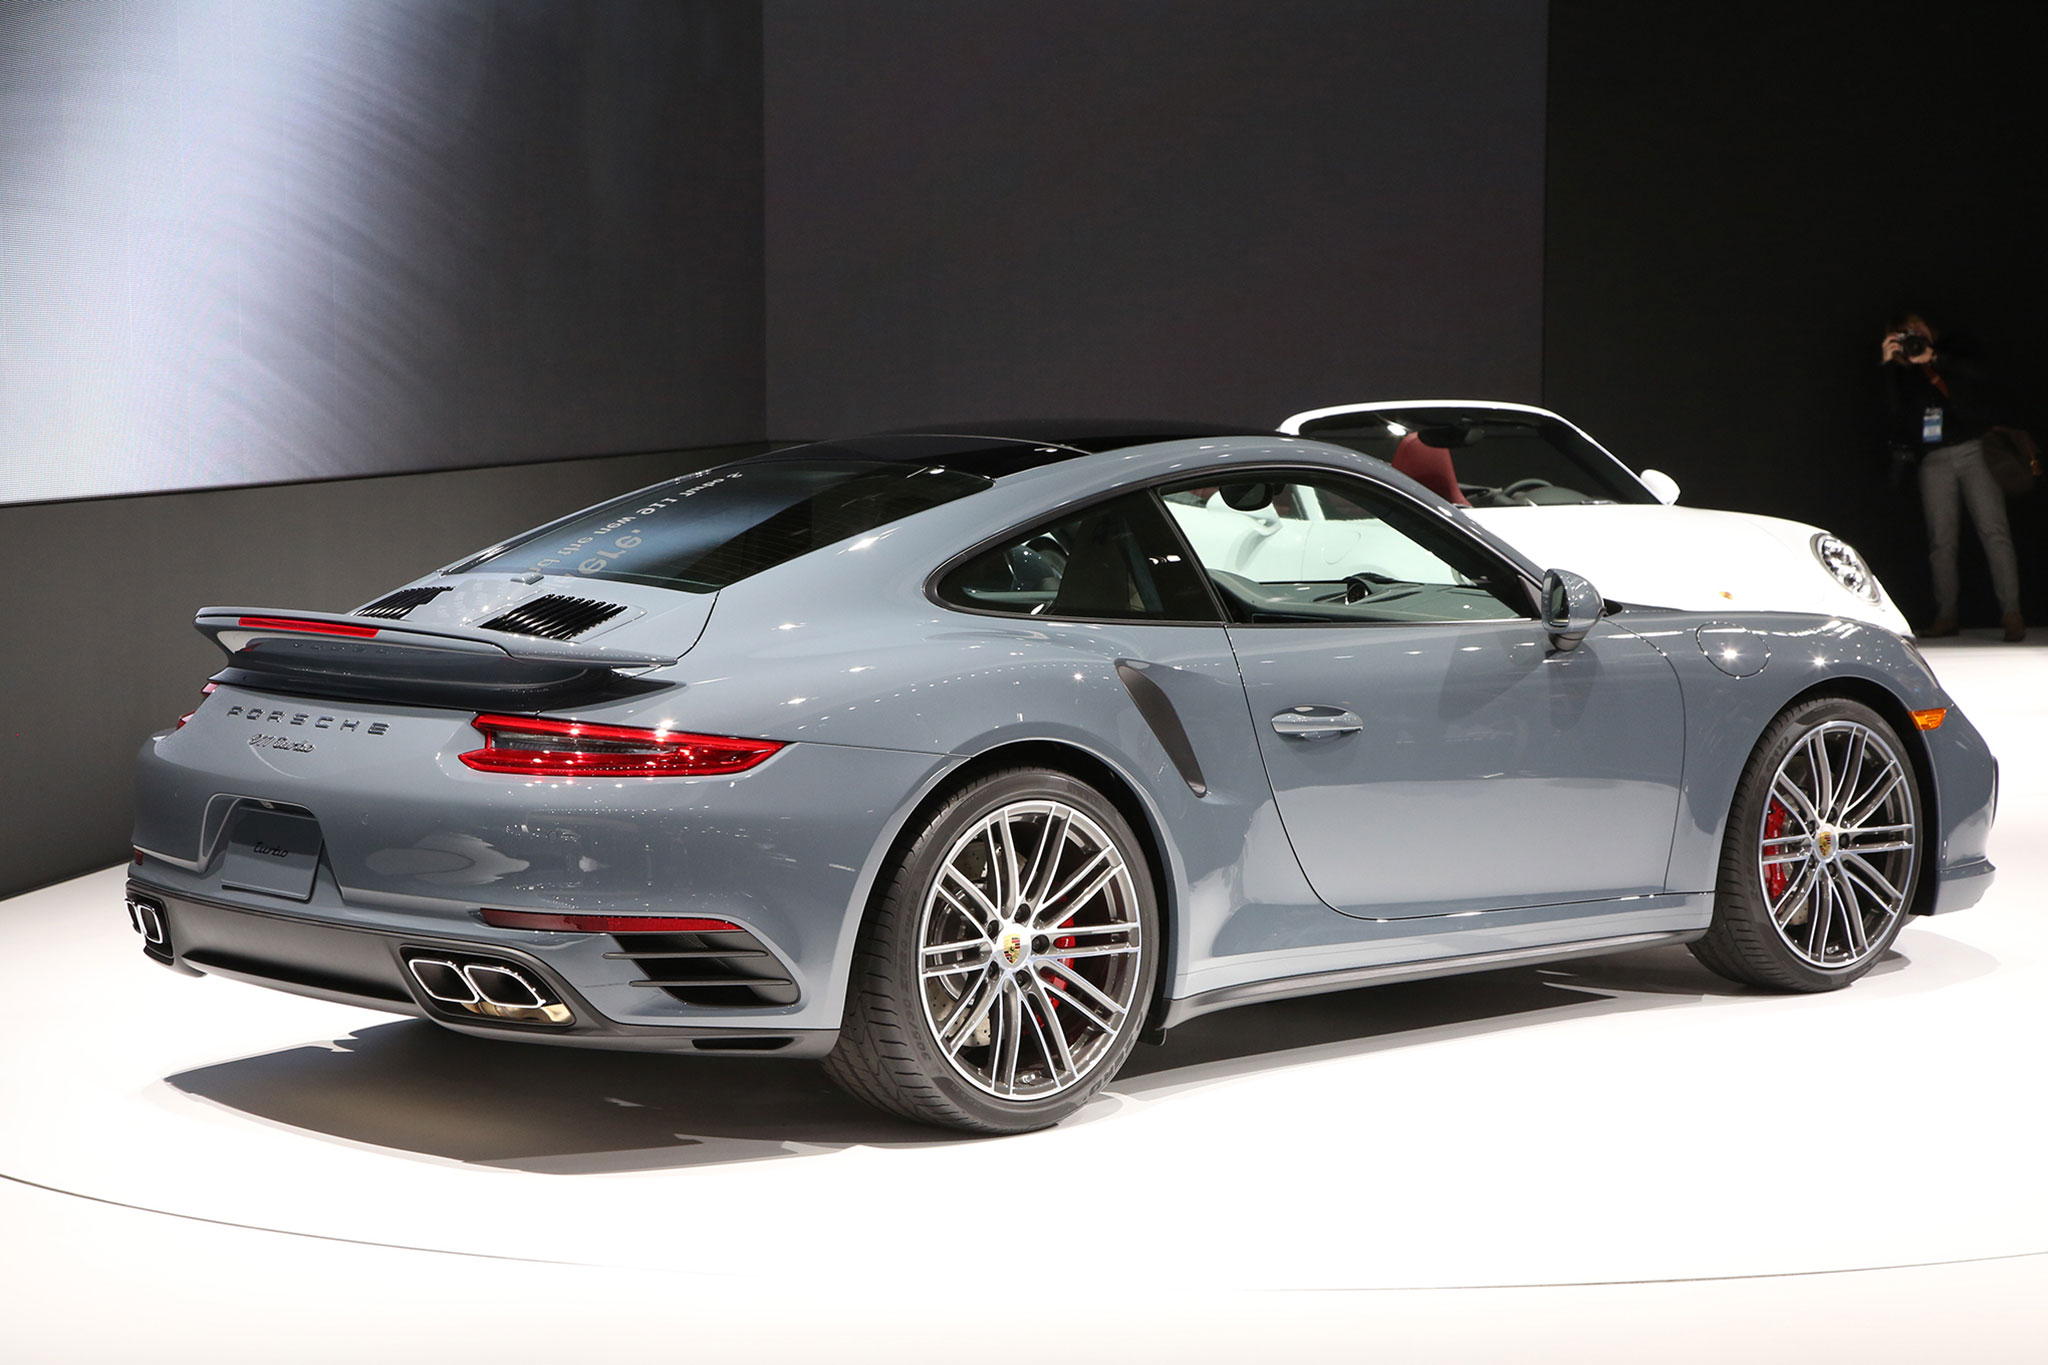 In The 2017 Porsche 911 Turbo S 3 8 Liter Twin Flat Six Output Rises From 520 Hp To 540 Thanks Redesigned Intake Ports New Fuel Injectors